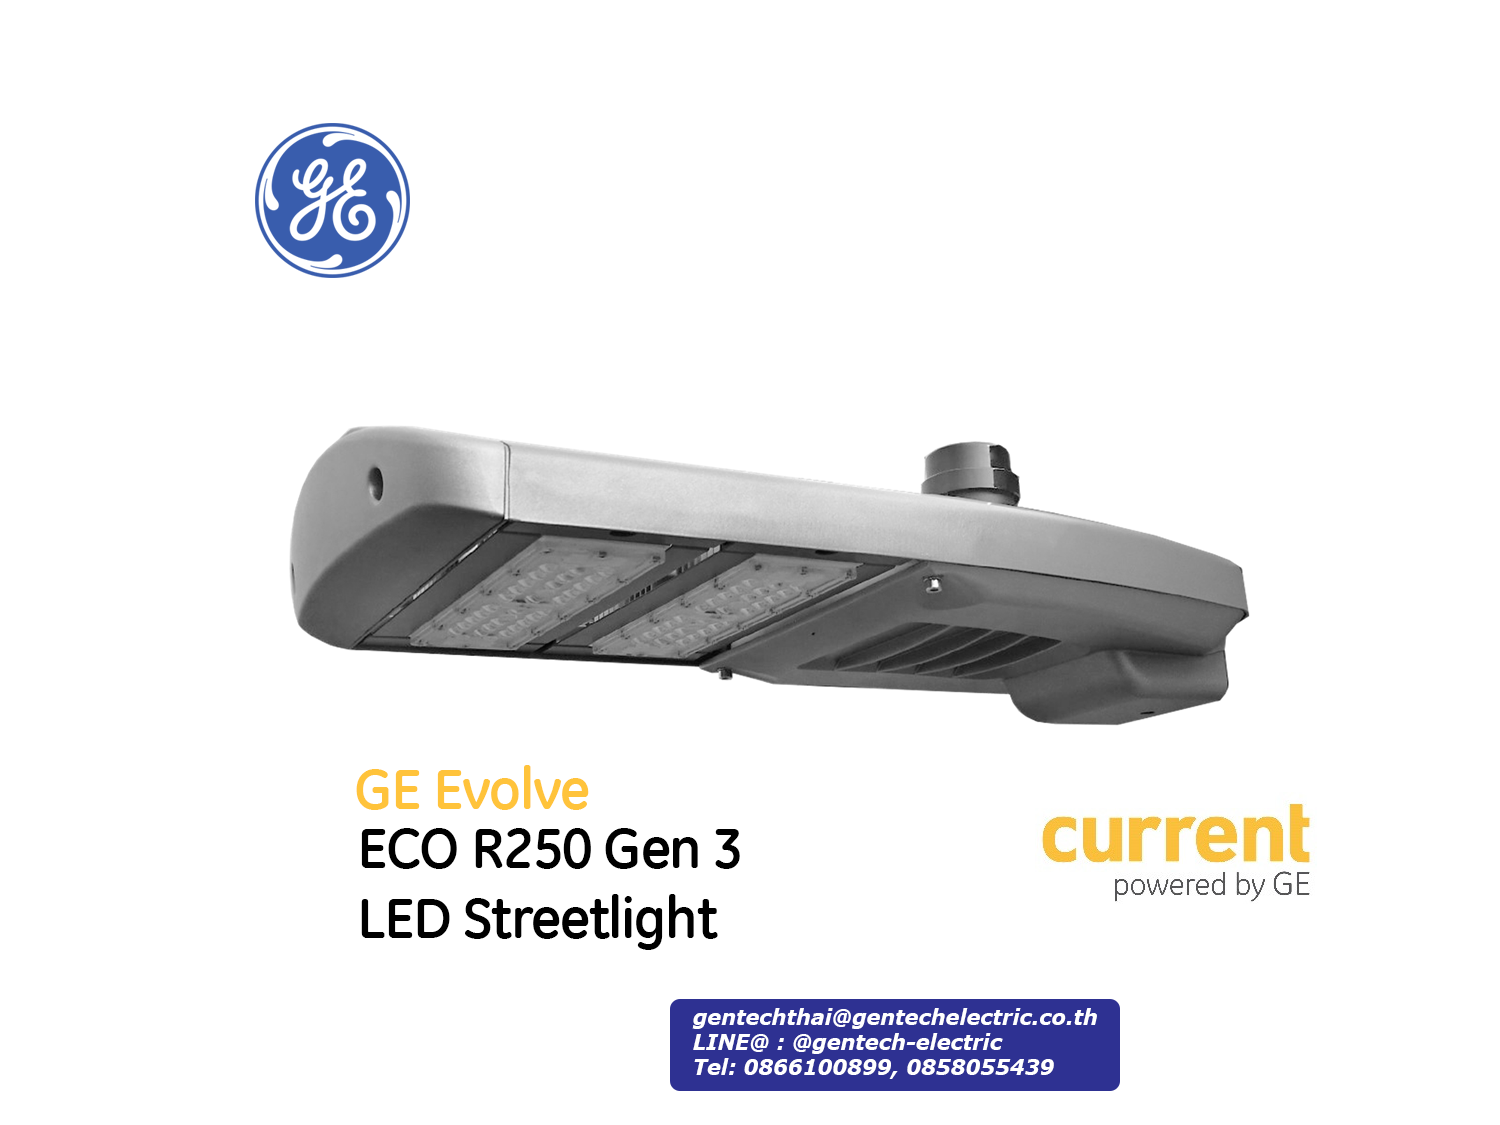 GE LED Streetlight ECO R250 Gen 3